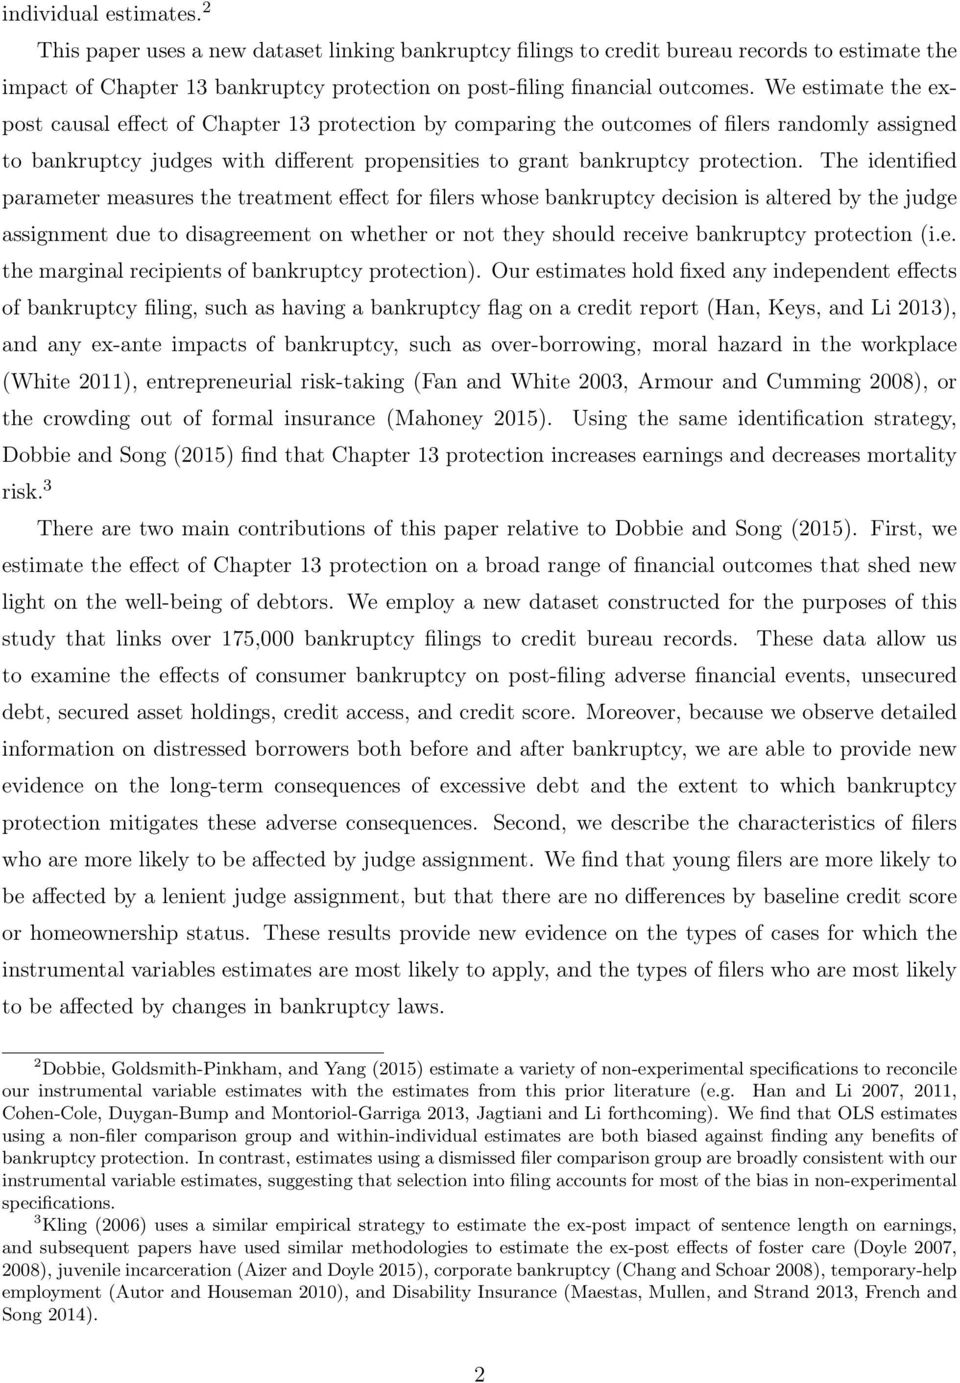 We estimate the expost causal effect of Chapter 13 protection by comparing the outcomes of filers randomly assigned to bankruptcy judges with different propensities to grant bankruptcy protection.